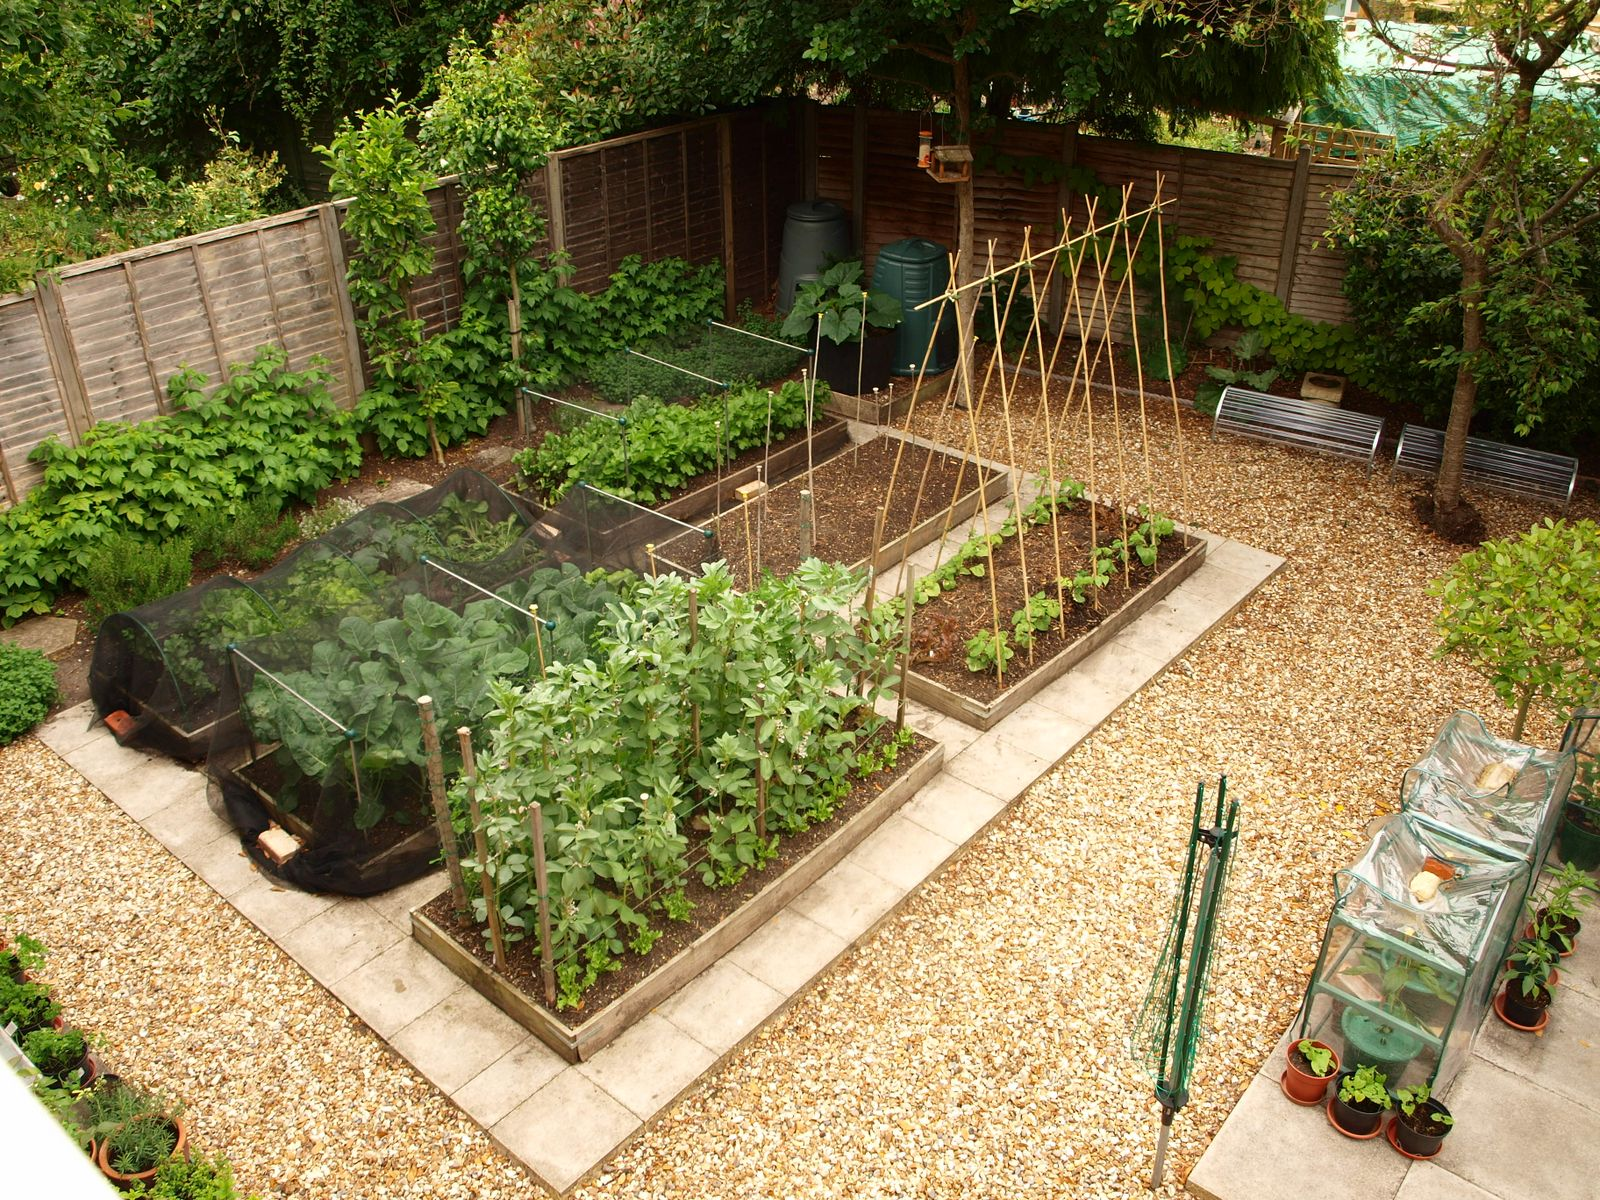 Garden plot ideas perfect home and garden design for Landscape layout ideas